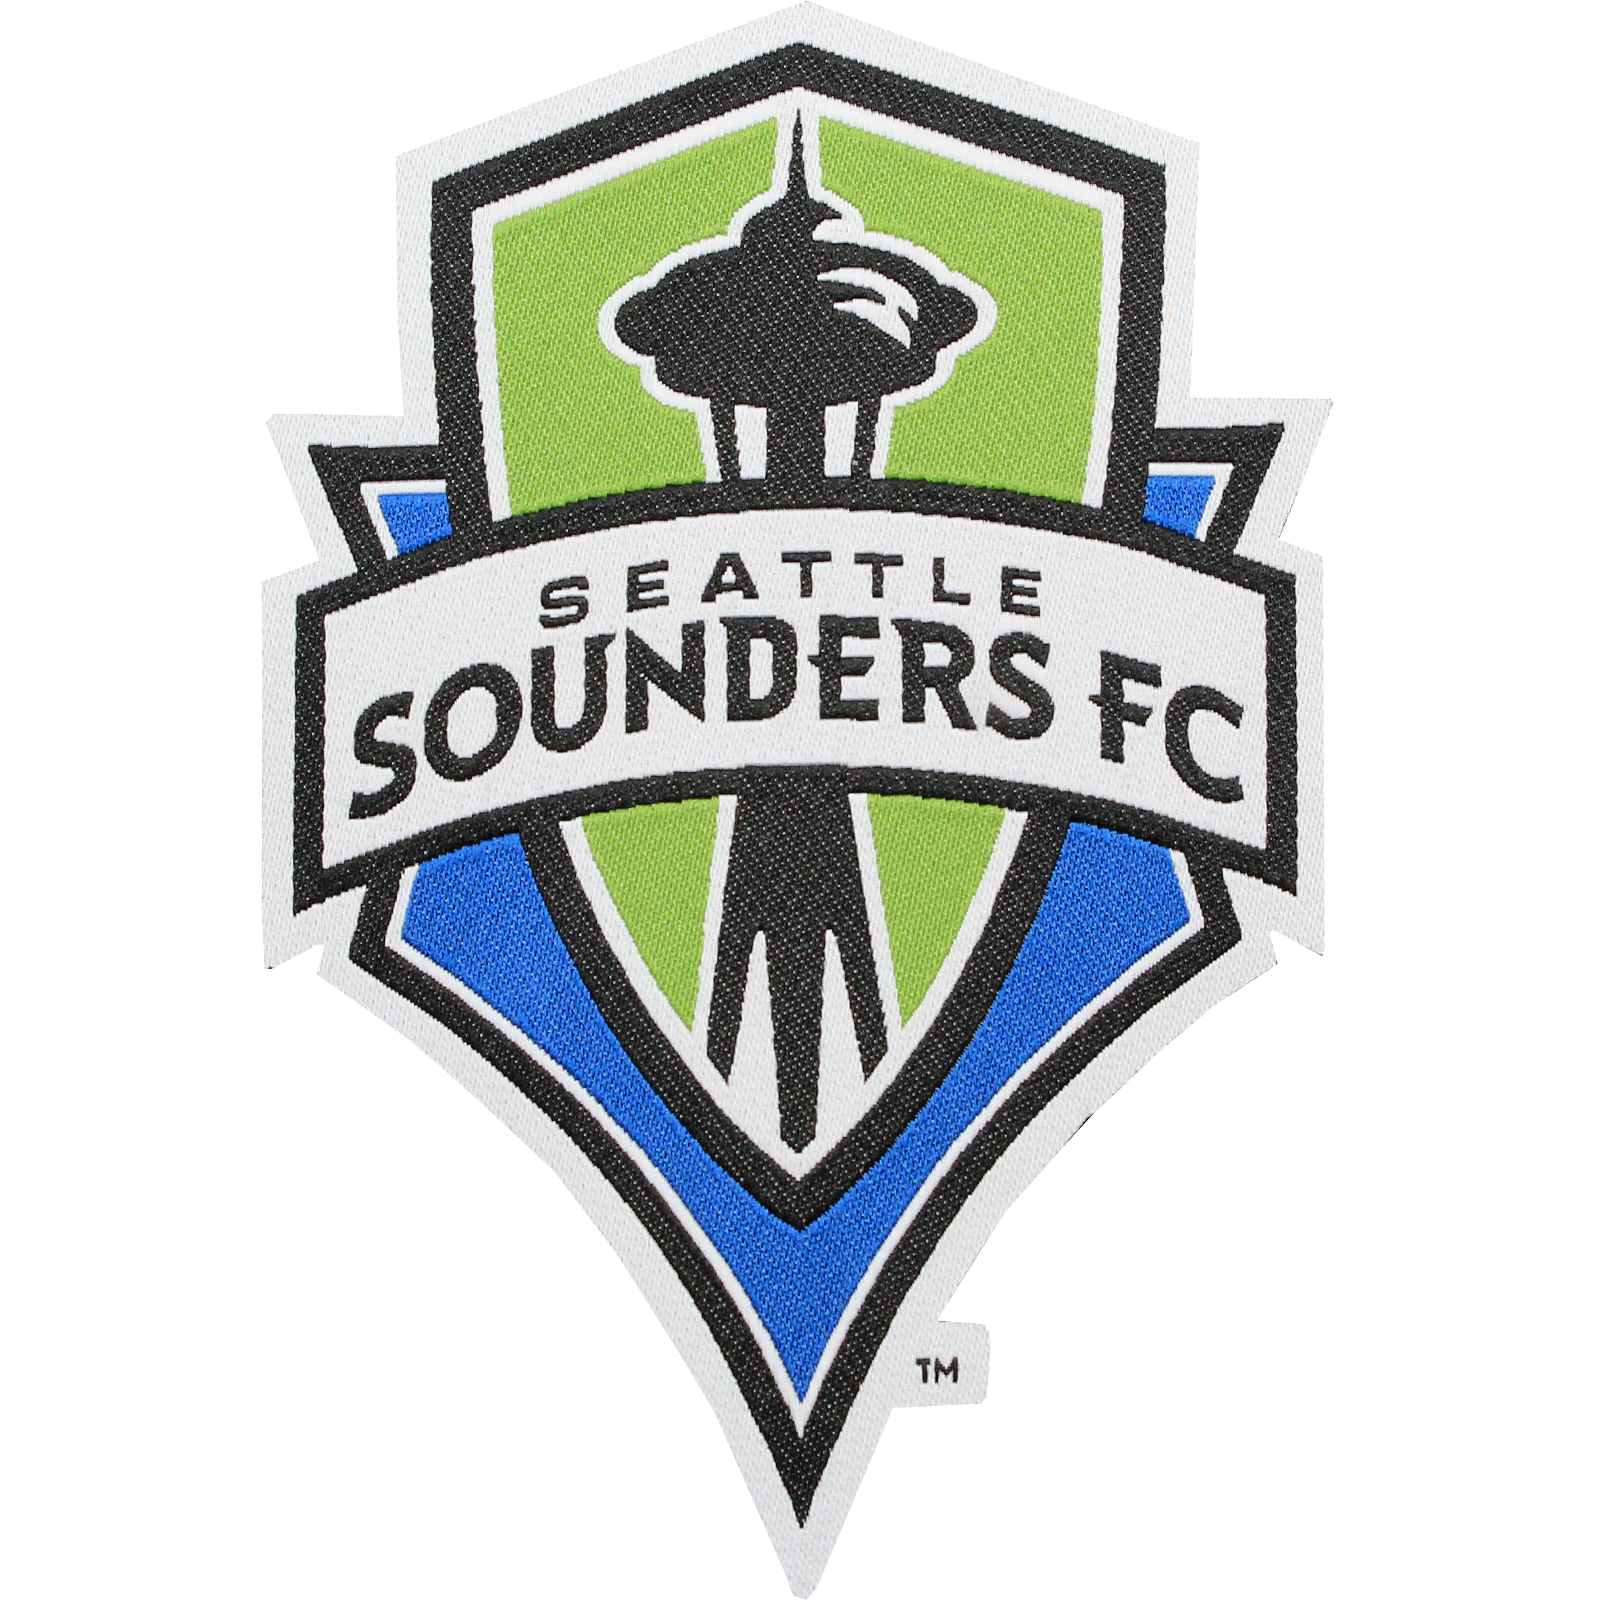 Seatle Sounders FC Primary Team Crest Pro-Weave Jersey Patch